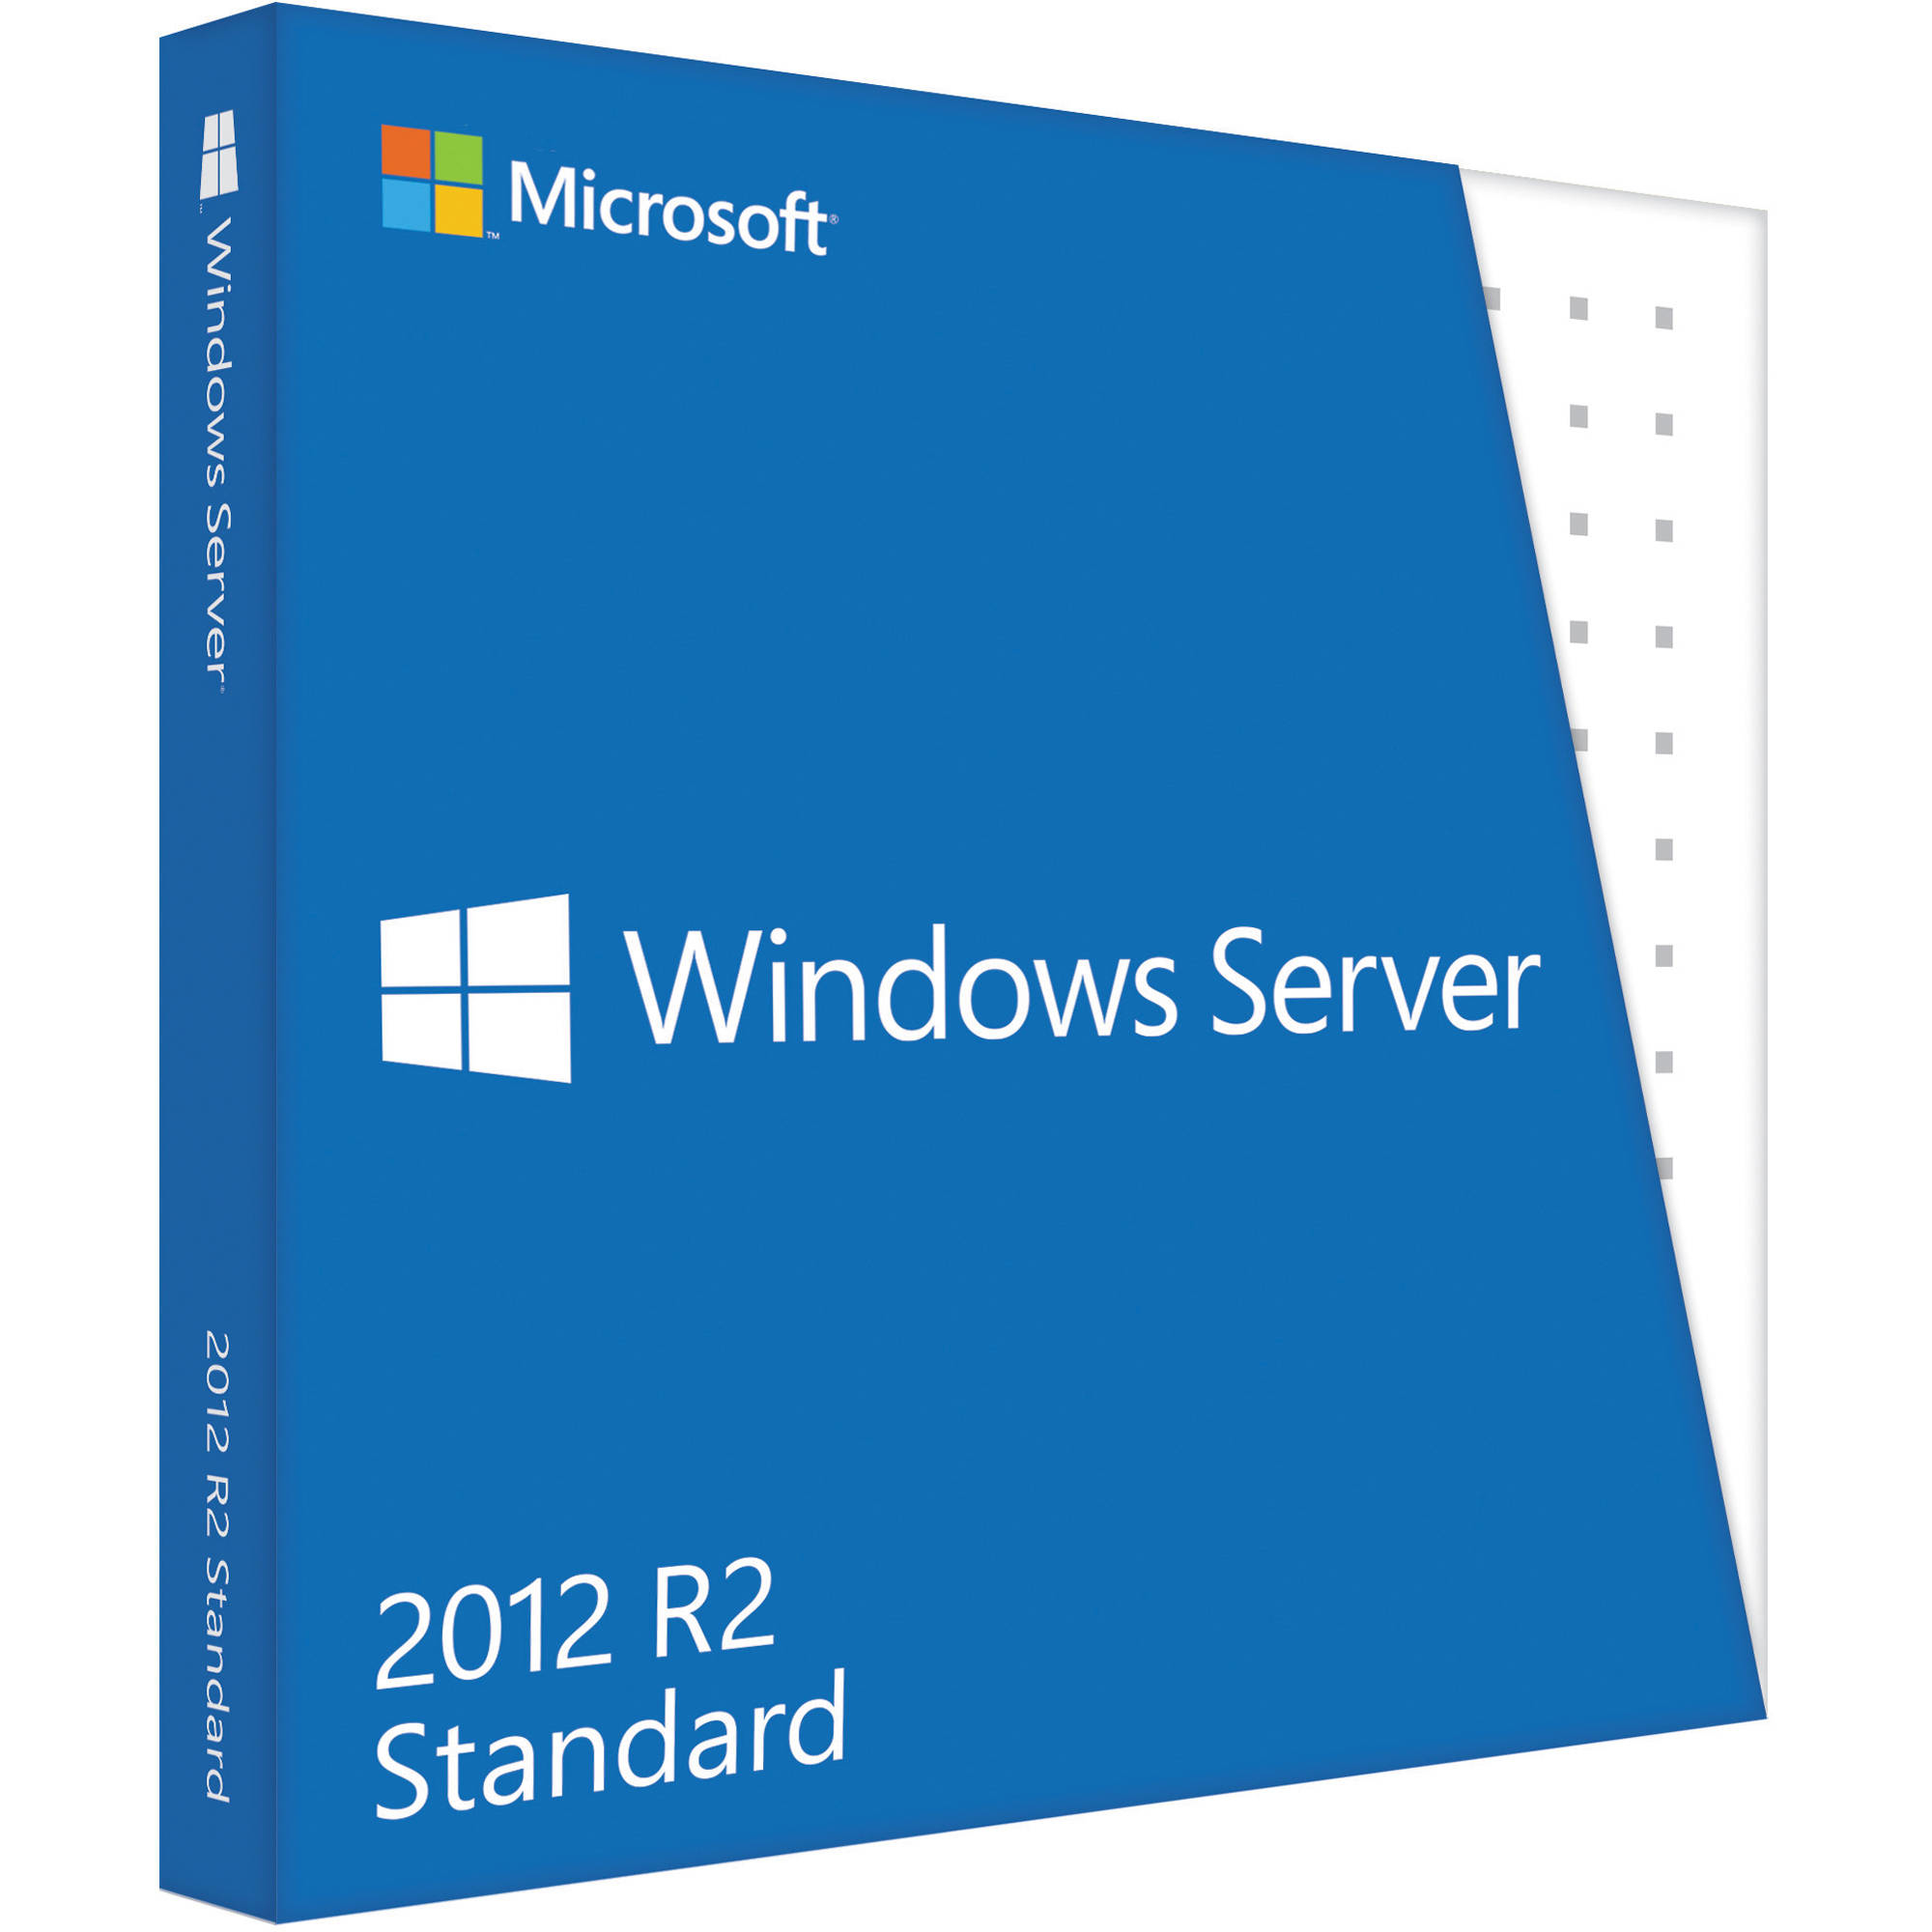 Win Svr Std 2012 R2 X64 1pk 2cpu/2vm P73-06165 - WC01